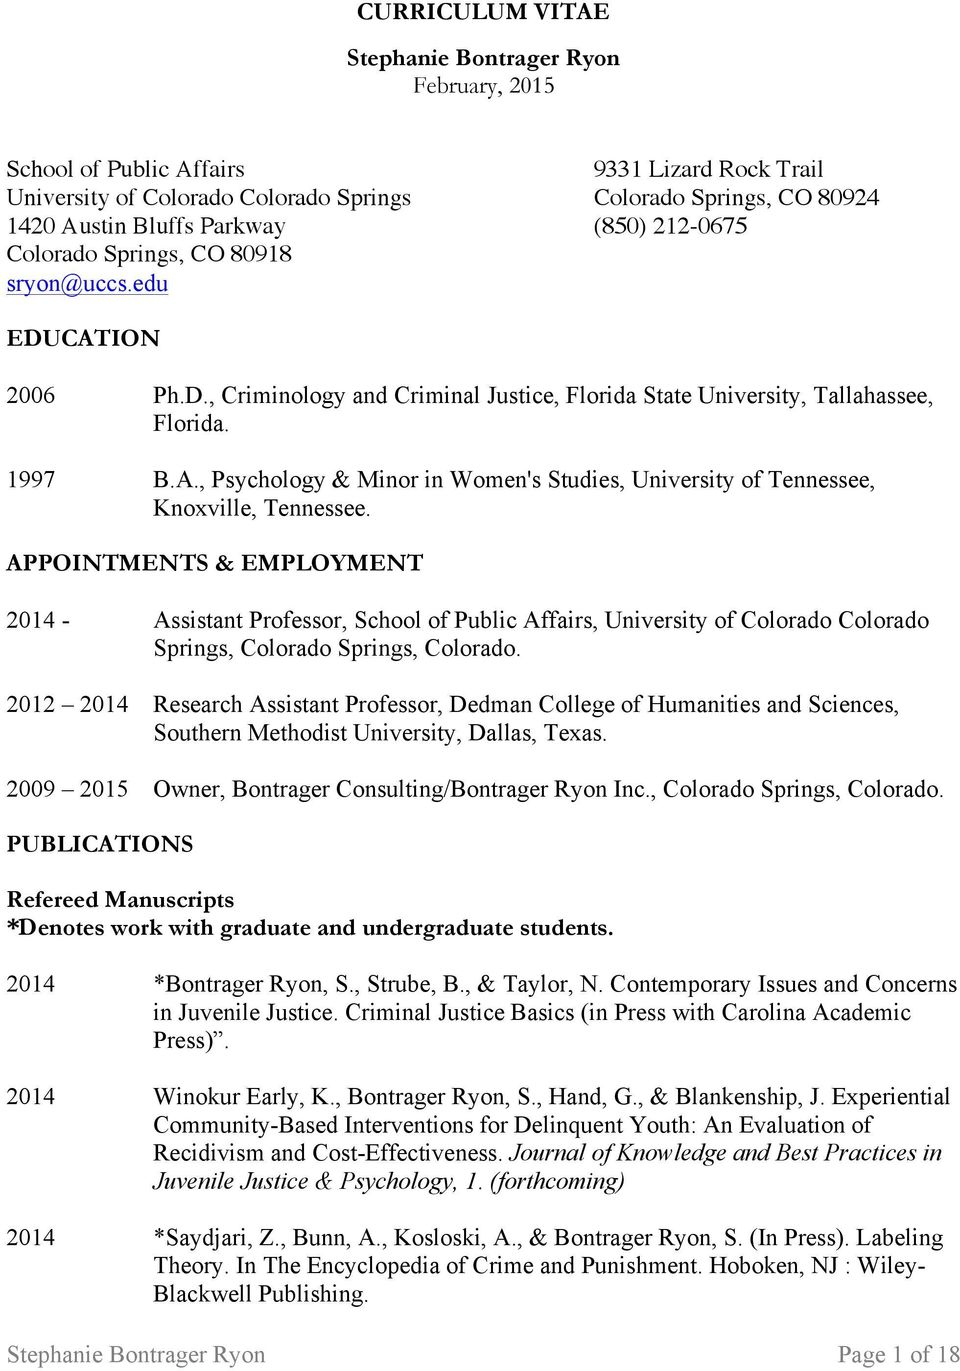 APPOINTMENTS & EMPLOYMENT 2014 - Assistant Professor, School of Public Affairs, University of Colorado Colorado Springs, Colorado Springs, Colorado.